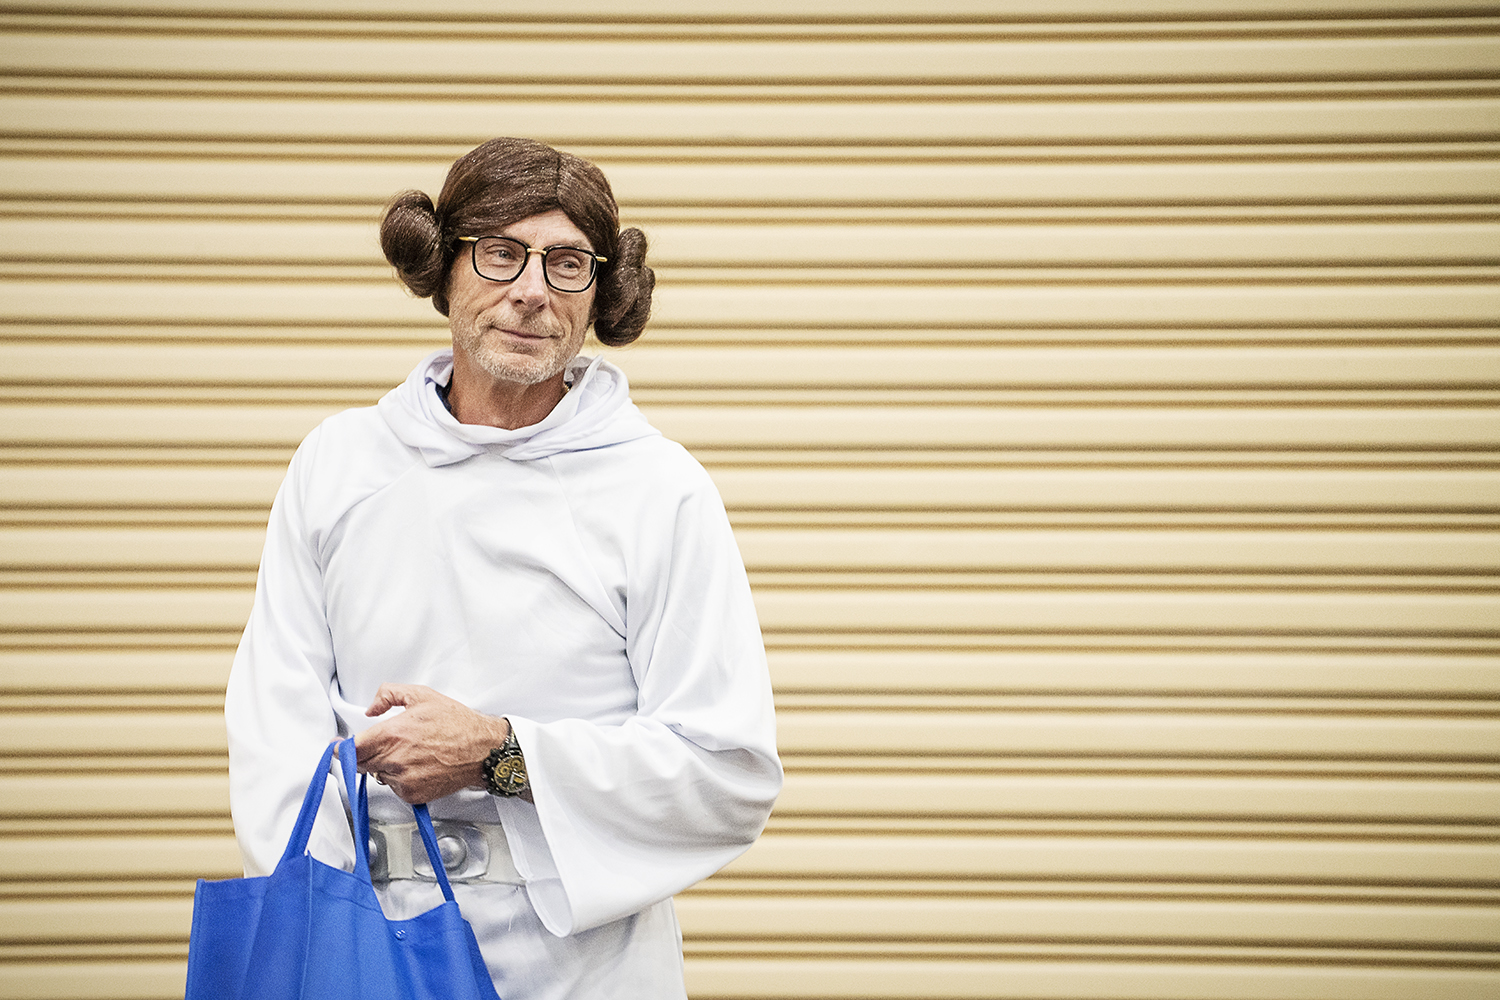 Flint, MI - Friday, May 4, 2018: Fenton Twp. Resident and Blueberry Founder Phil Shaltz, 69, looks across the crowd of Blueberry Ambassadors while dressed as Princess Leia from Star Wars before handing out blueberry-replica stress balls during the 5th Annual Blueberry Ambassador Awards Party at the Riverfront Banquet Center downtown.